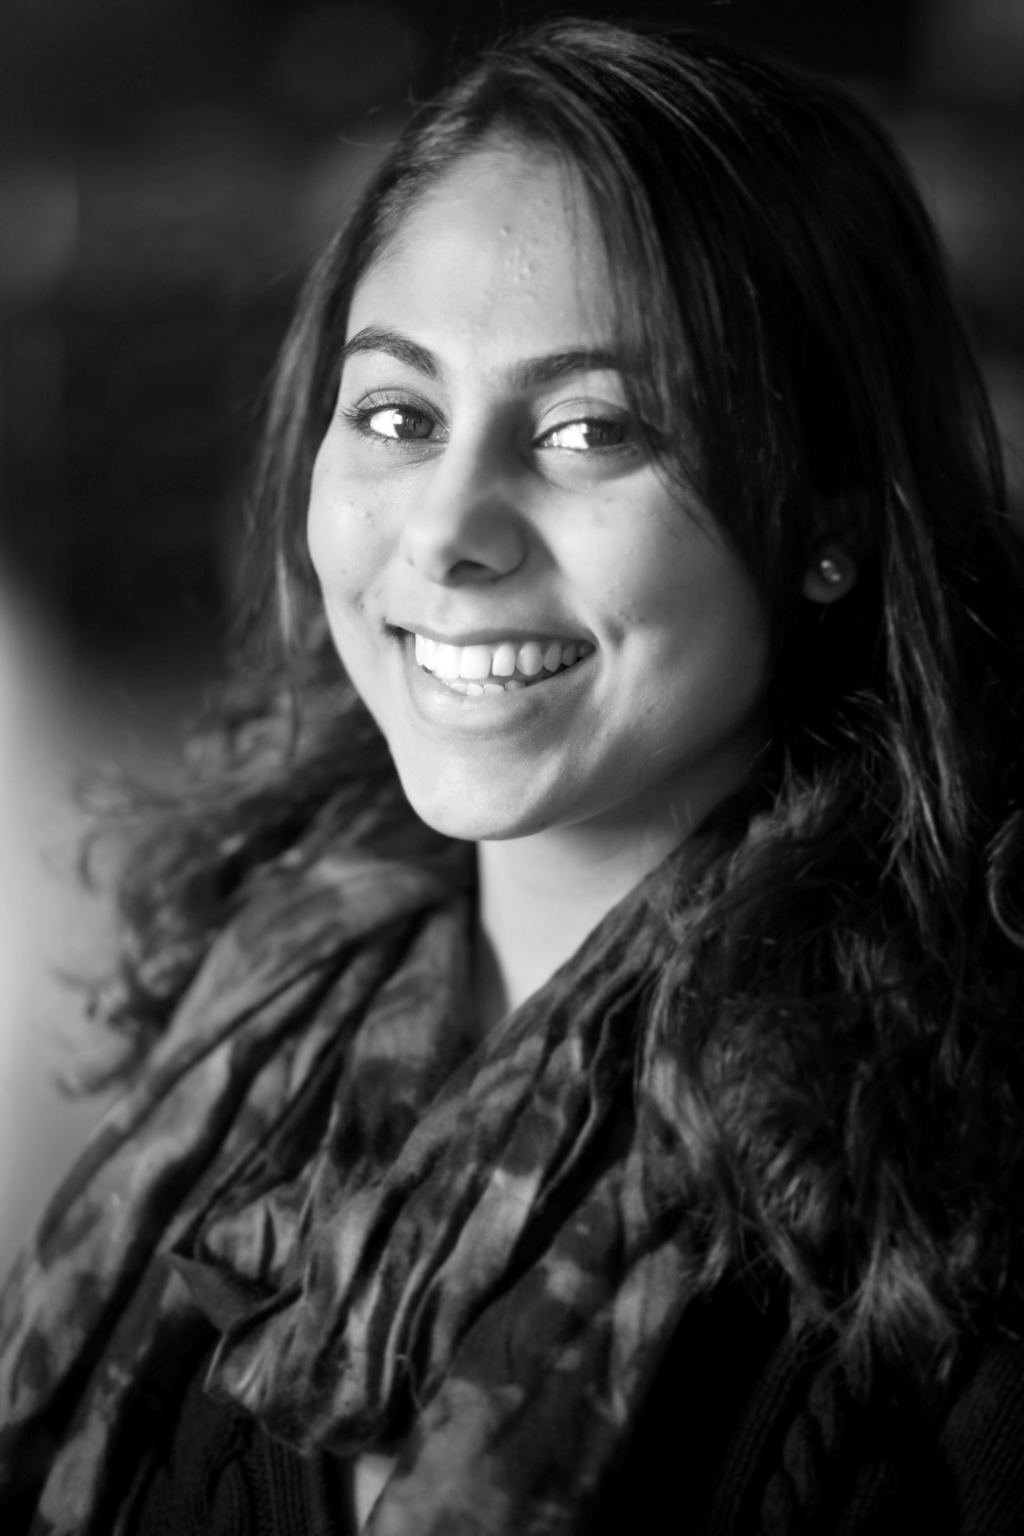 SASHA JIWANI, PRODUCTION + COMMUNICATIONS ASSOCIATE  Sasha was the Production/Communications Associate for Talking Eyes Media. Since graduating from Emory University with a BA in International Relations, Jiwani has worked on several projects related to raising awareness on pressing social issues. She also leads the initiative in a faith-based organization to launch educational and sports activities for youth in her community. She is currently working as a Project Manager for Pearson and working towards getting her MBA from Rutgers University.